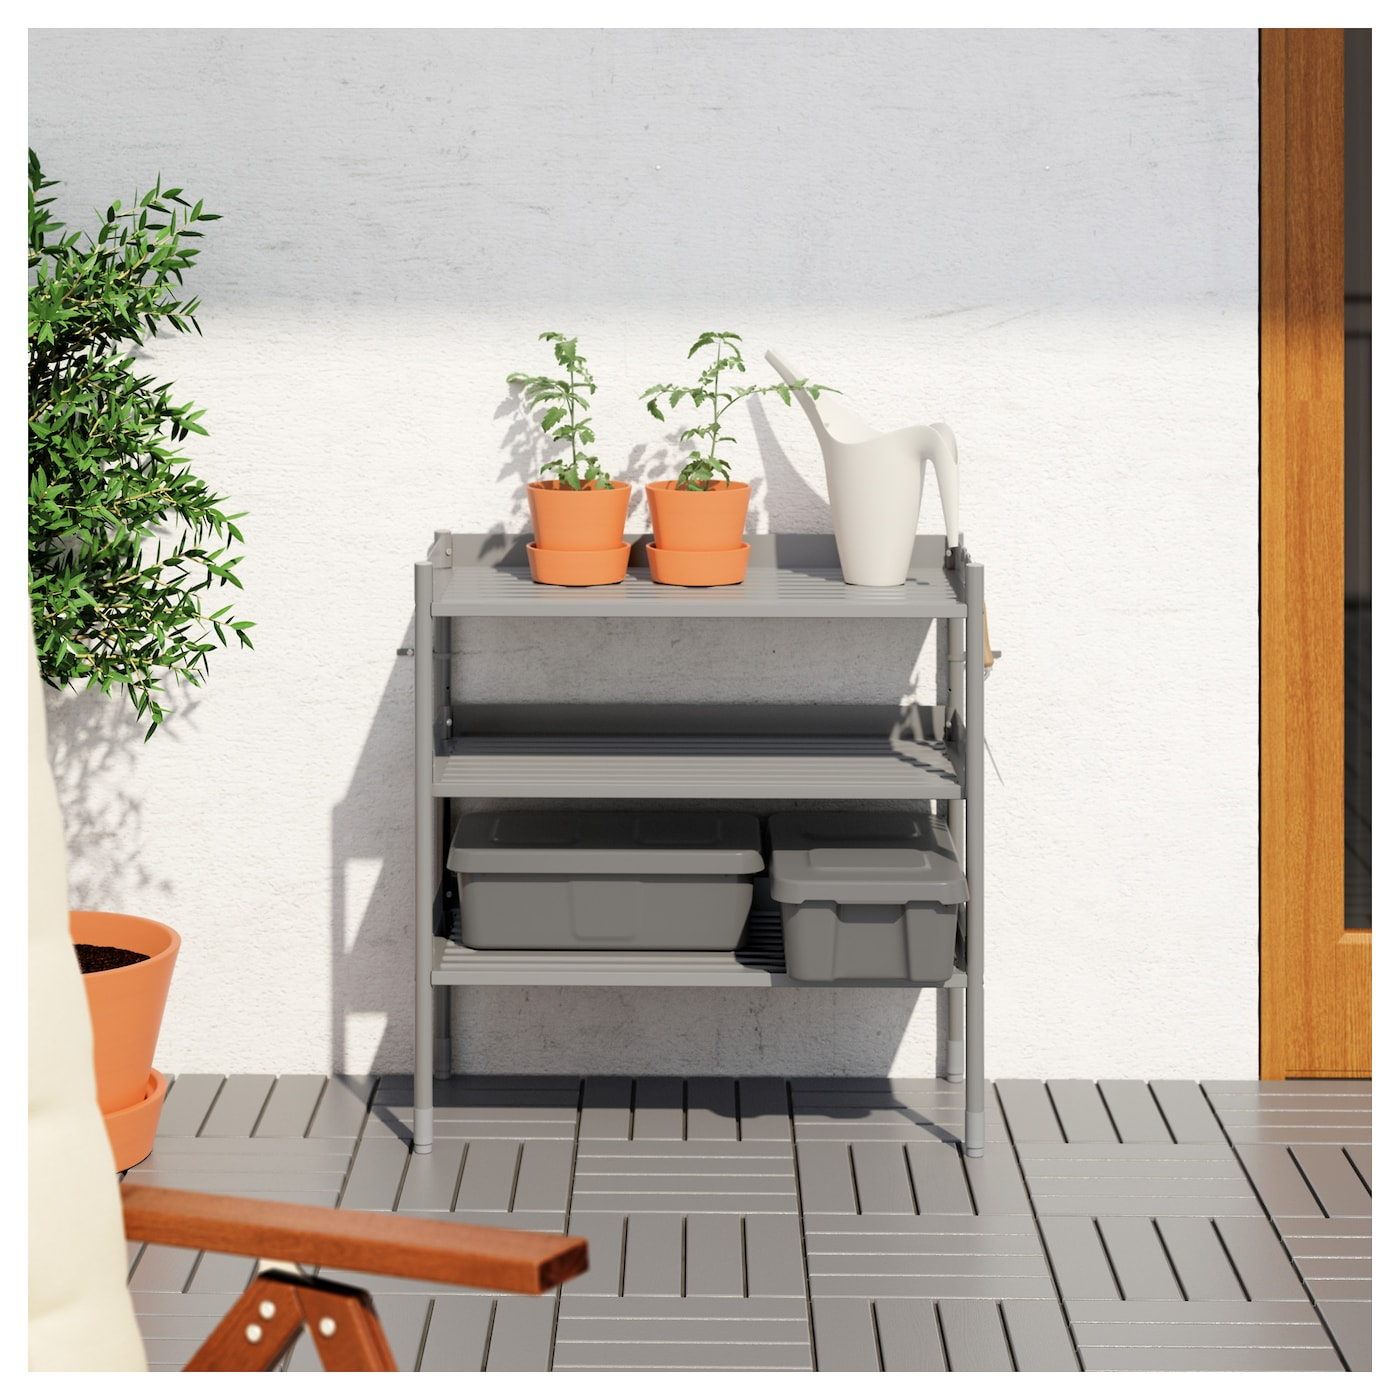 IKEA HINDÖ shelving unit in/outdoor You can adjust the height of the shelves to suit your needs.